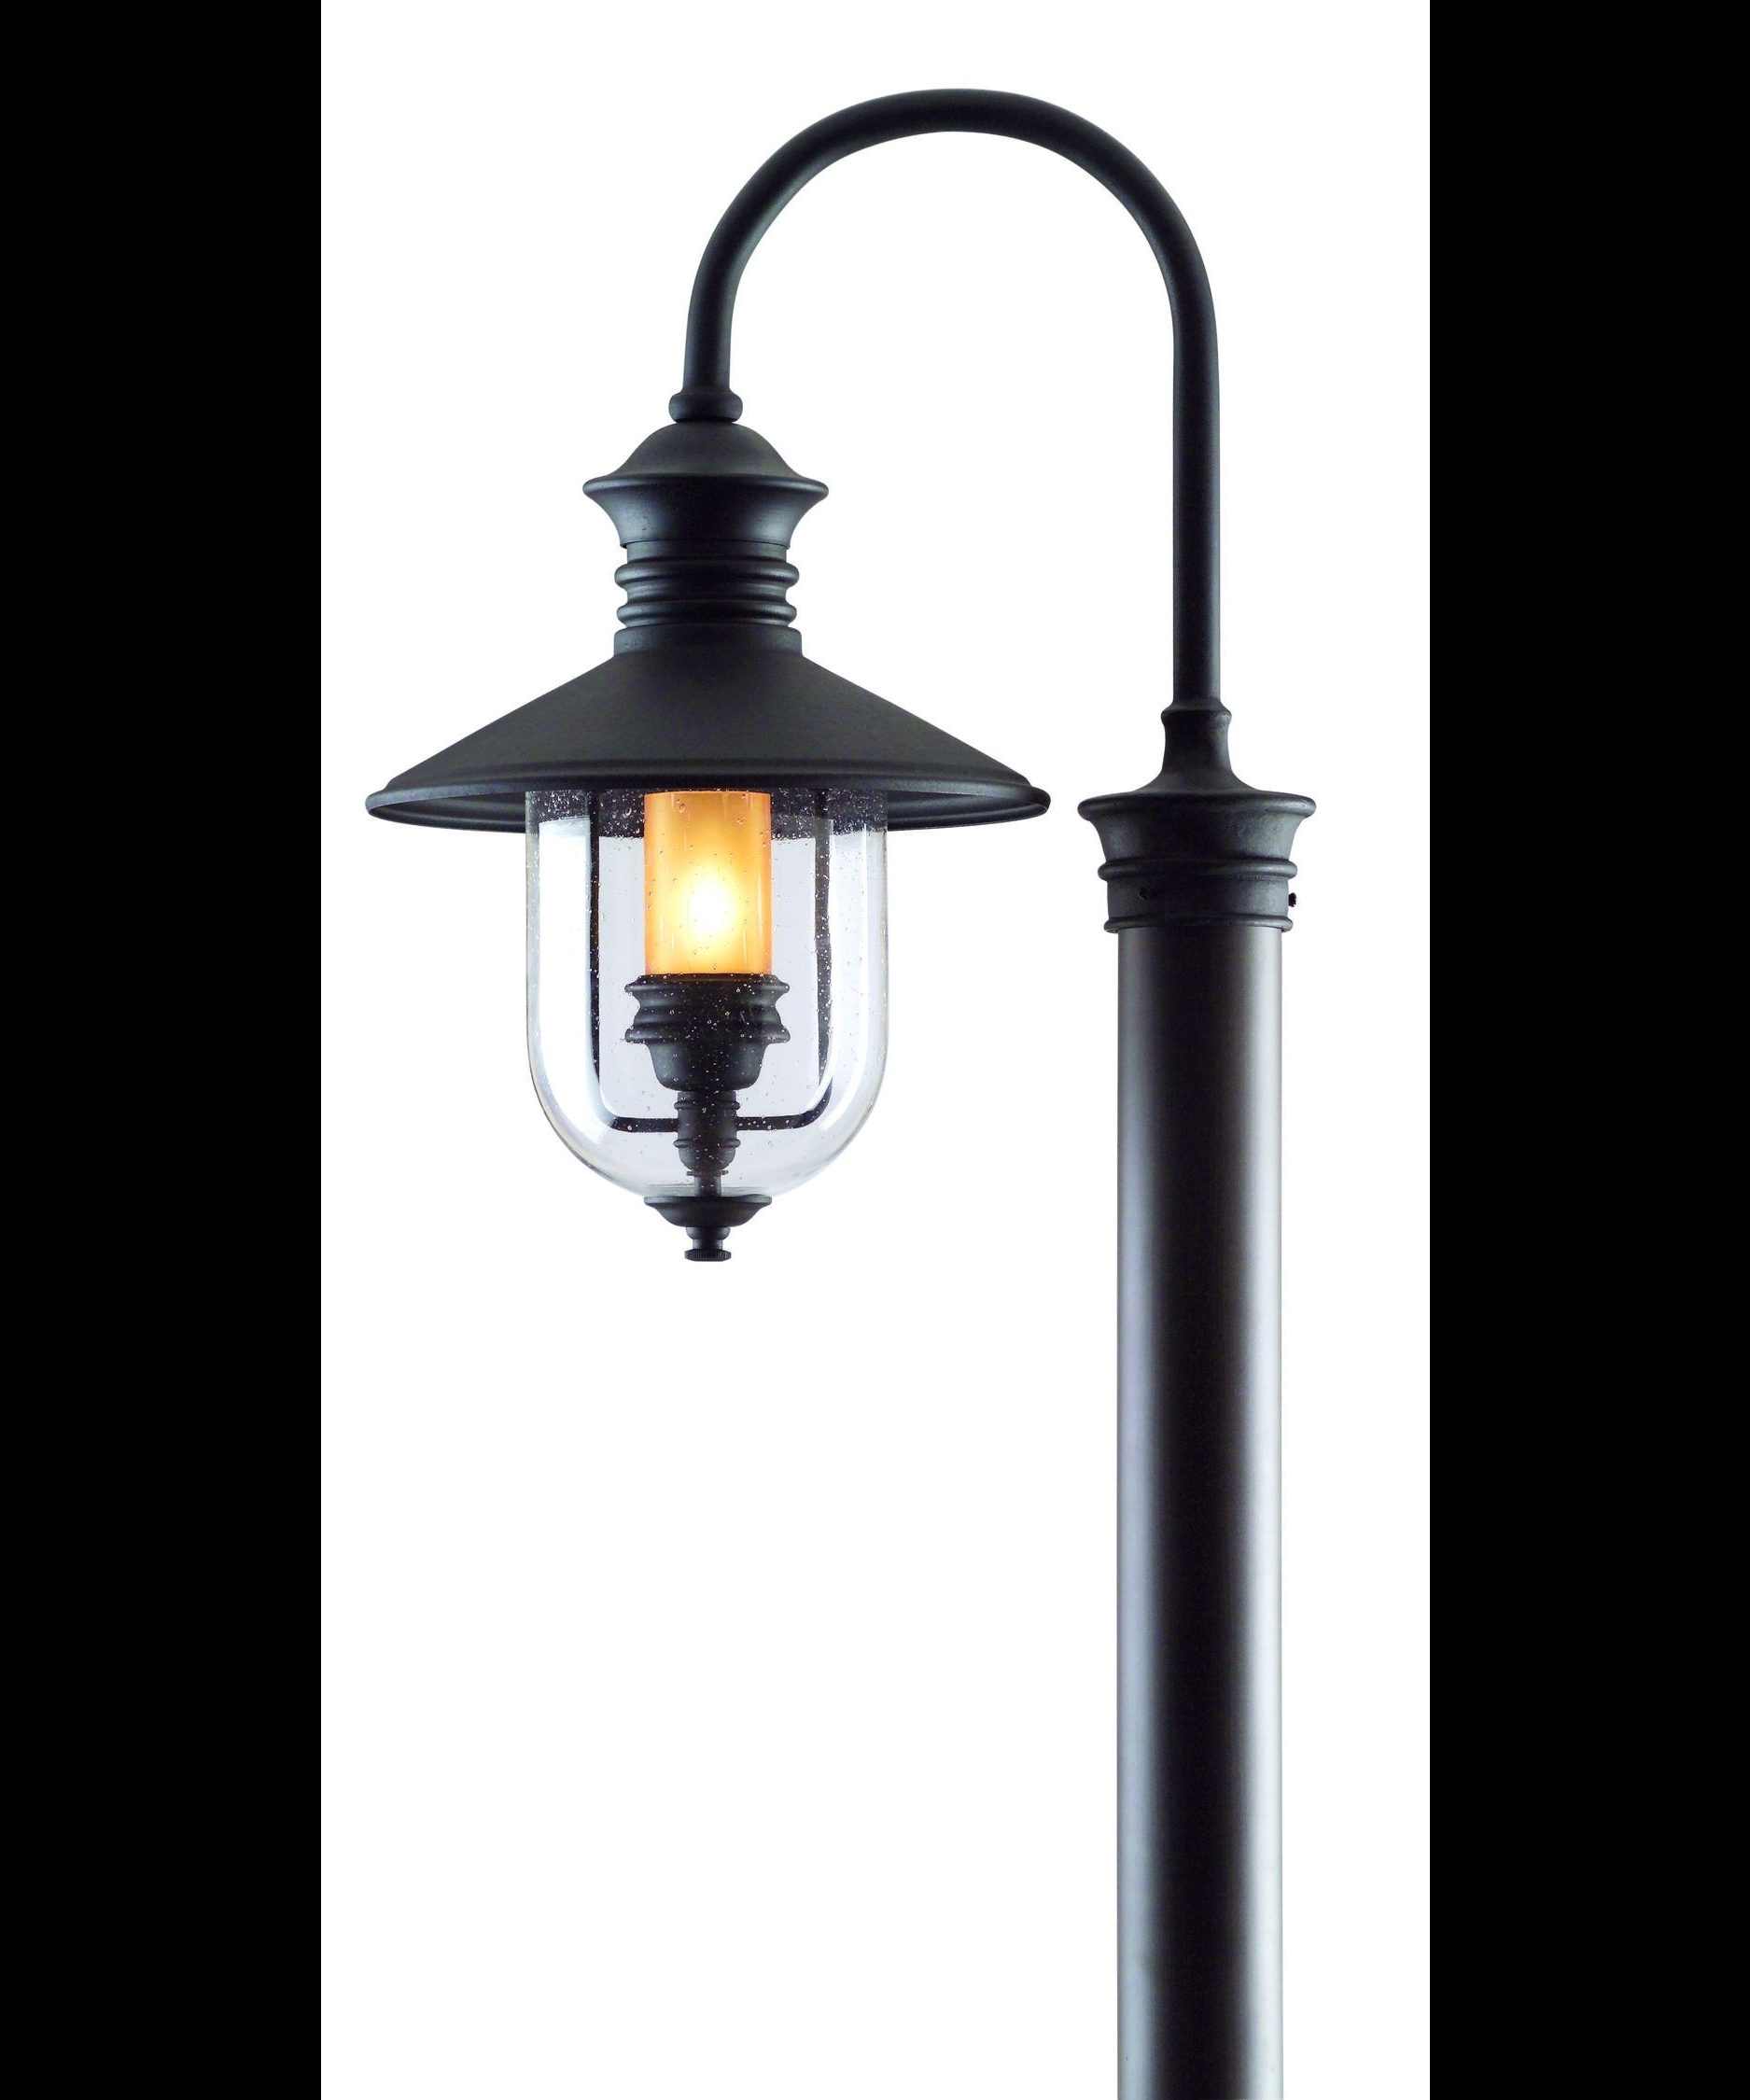 Popular Contemporary Outdoor Lamp Post Lighting – Outdoor Designs With Contemporary Outdoor Post Lighting (View 16 of 20)